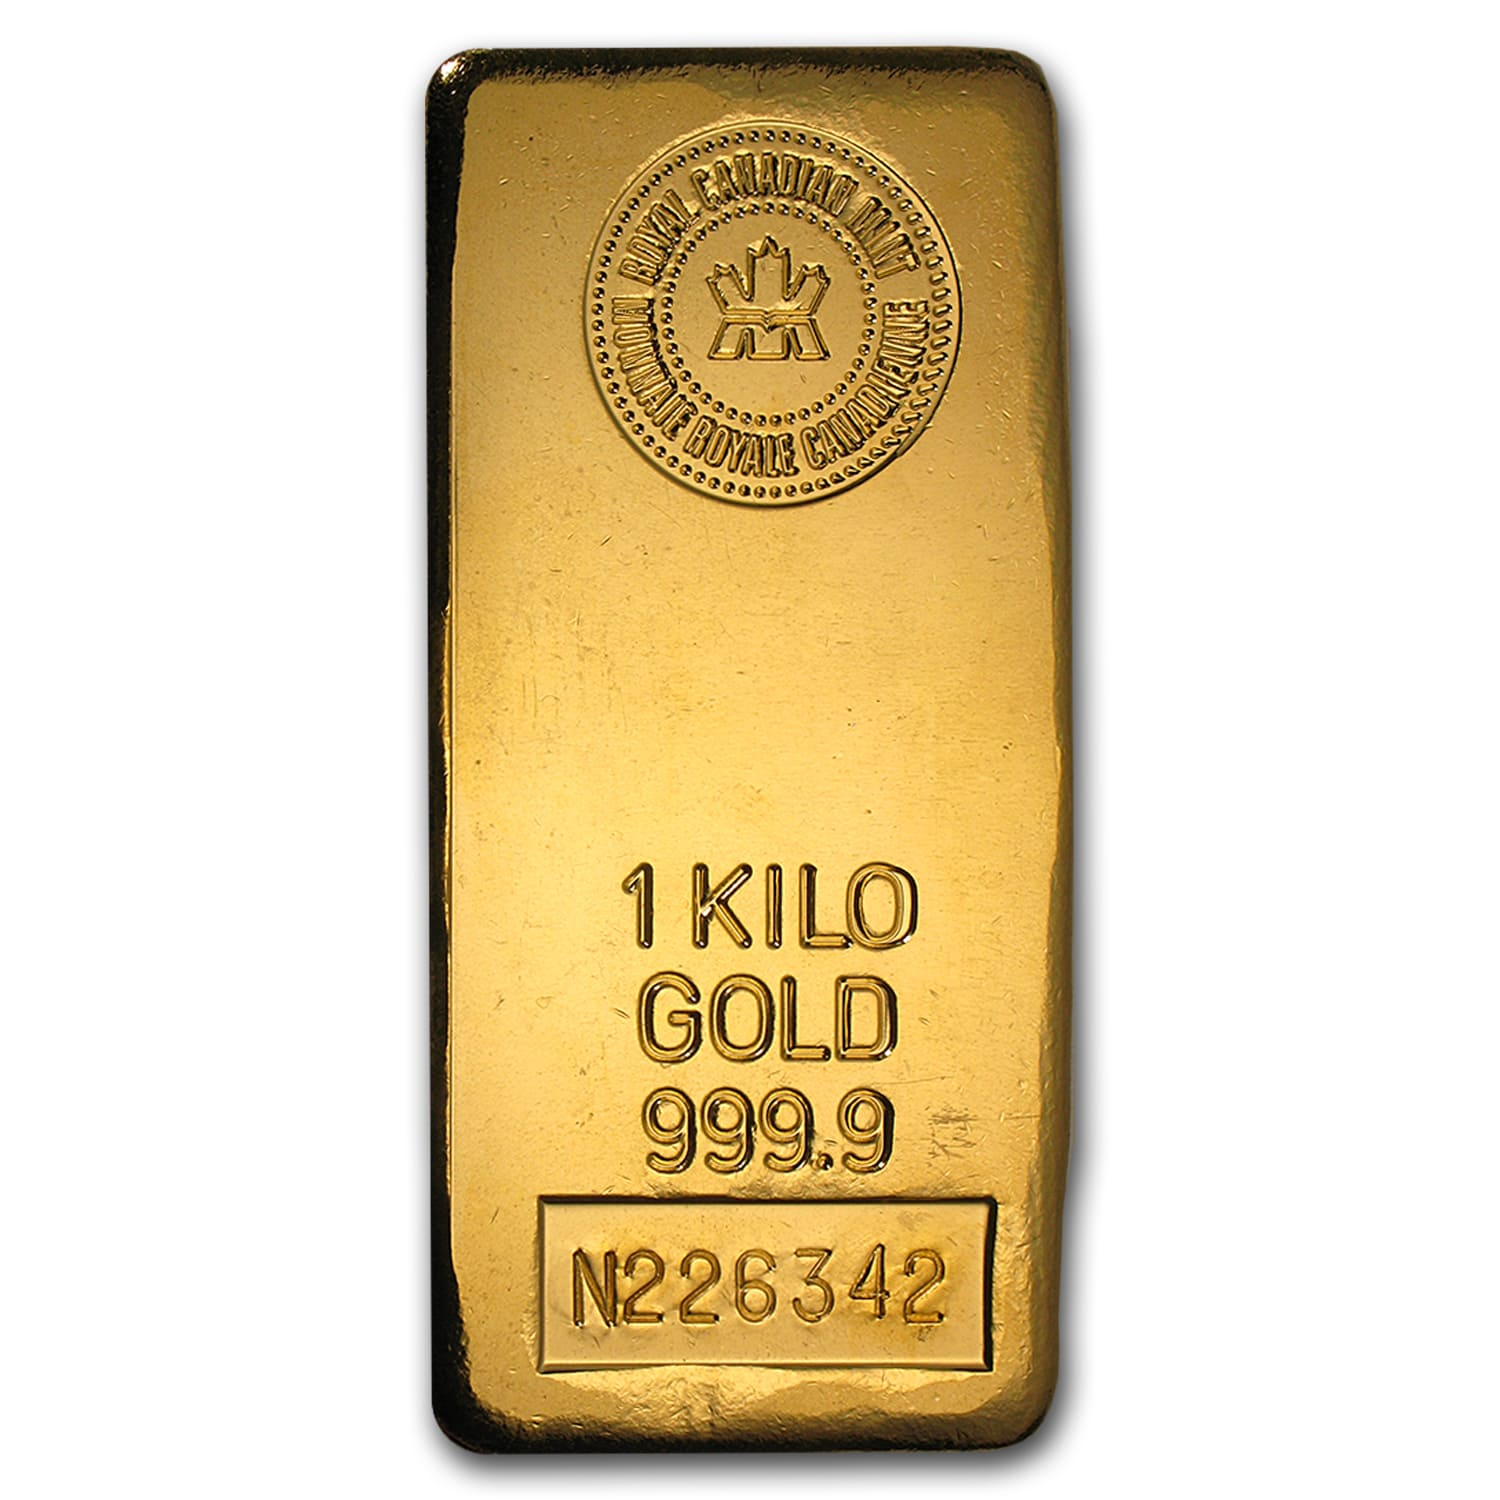 1 Kilo Gold Bar - Royal Canadian Mint